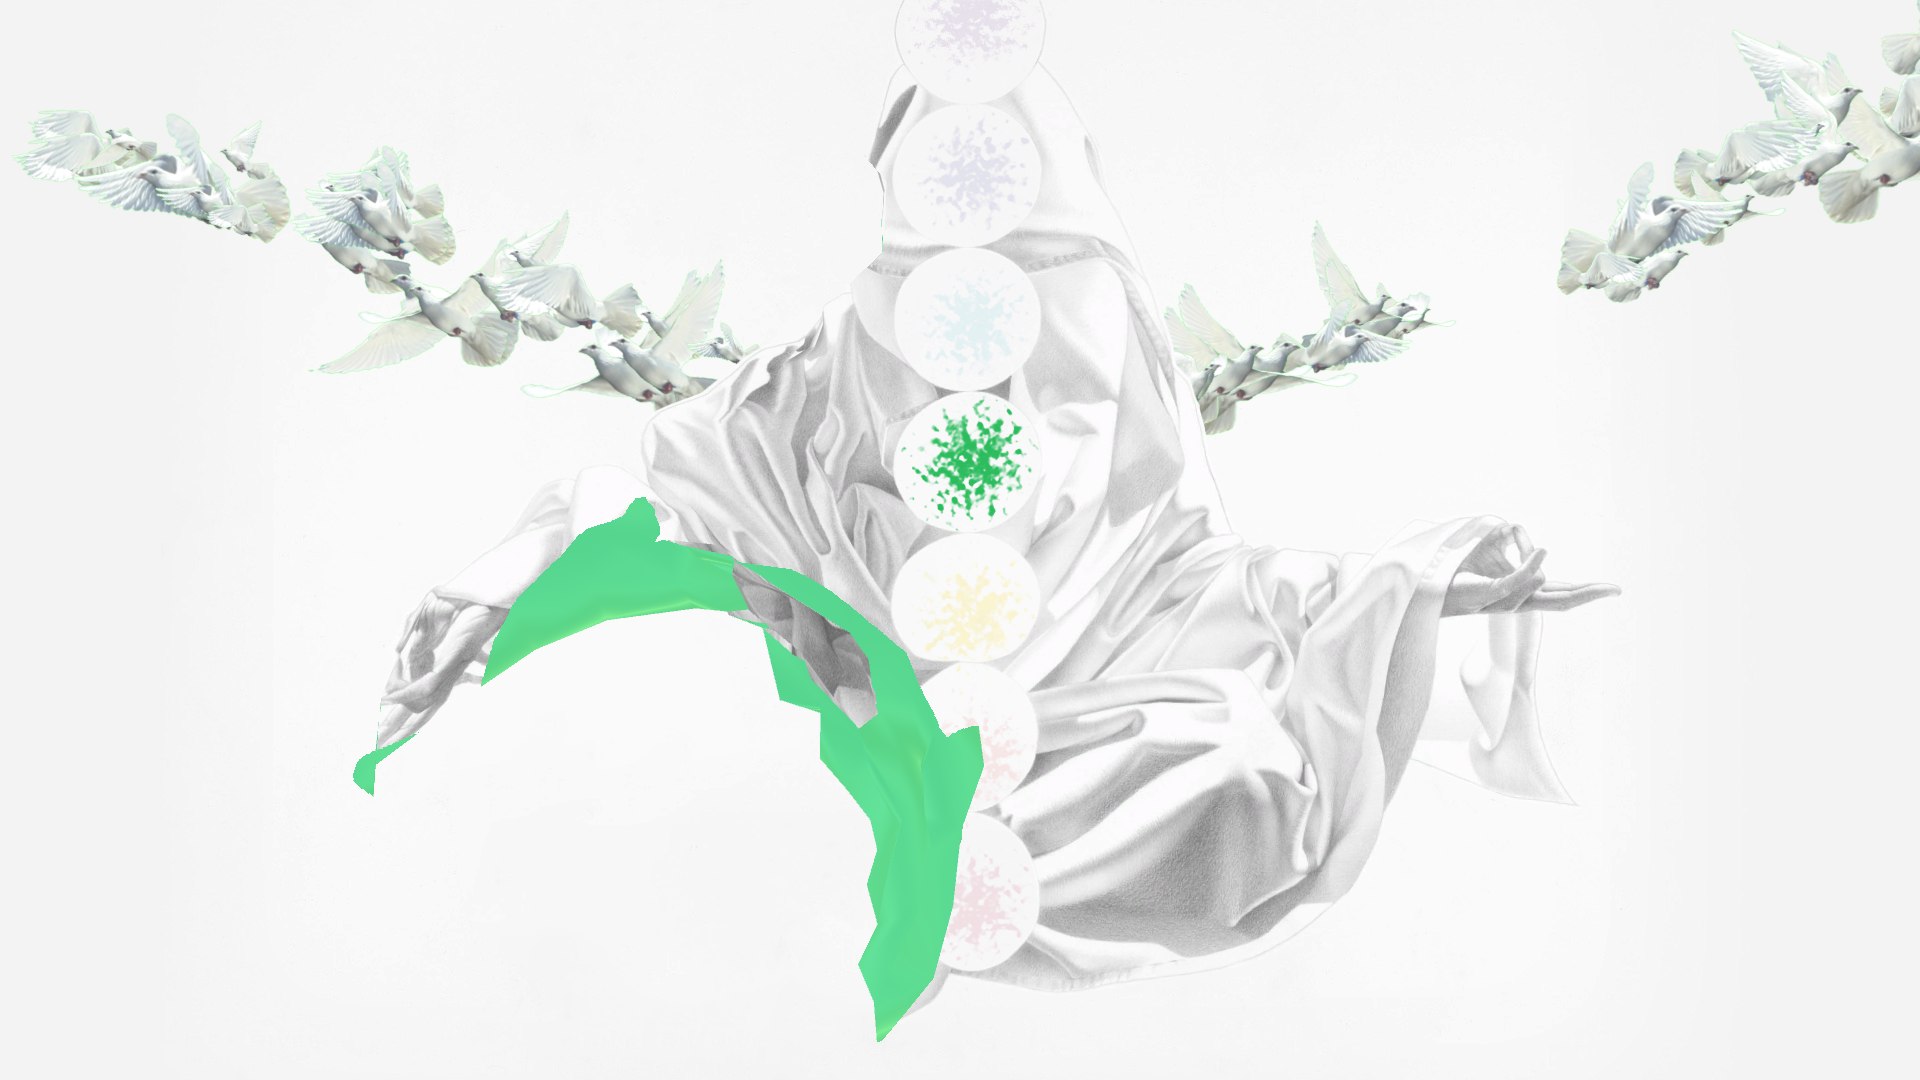 Digital animation art created by Constance Edwards Scopelitis, featured is the green shockra